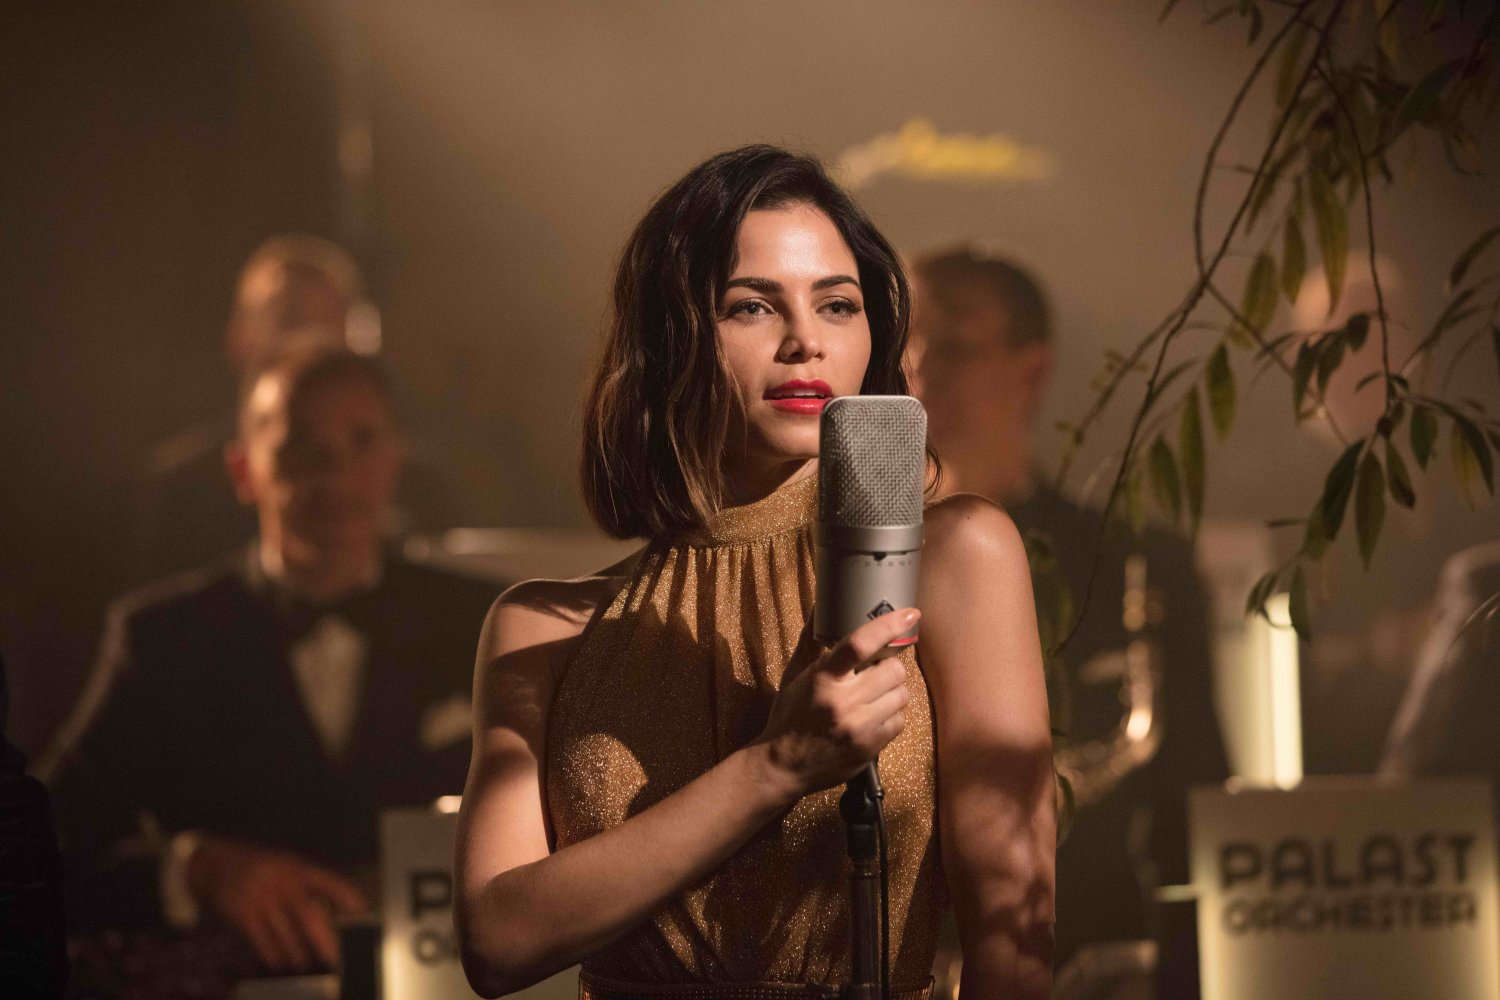 Jenna Dewan in Berlin, I Love You (Signature Entertainment, 19th August 2019)